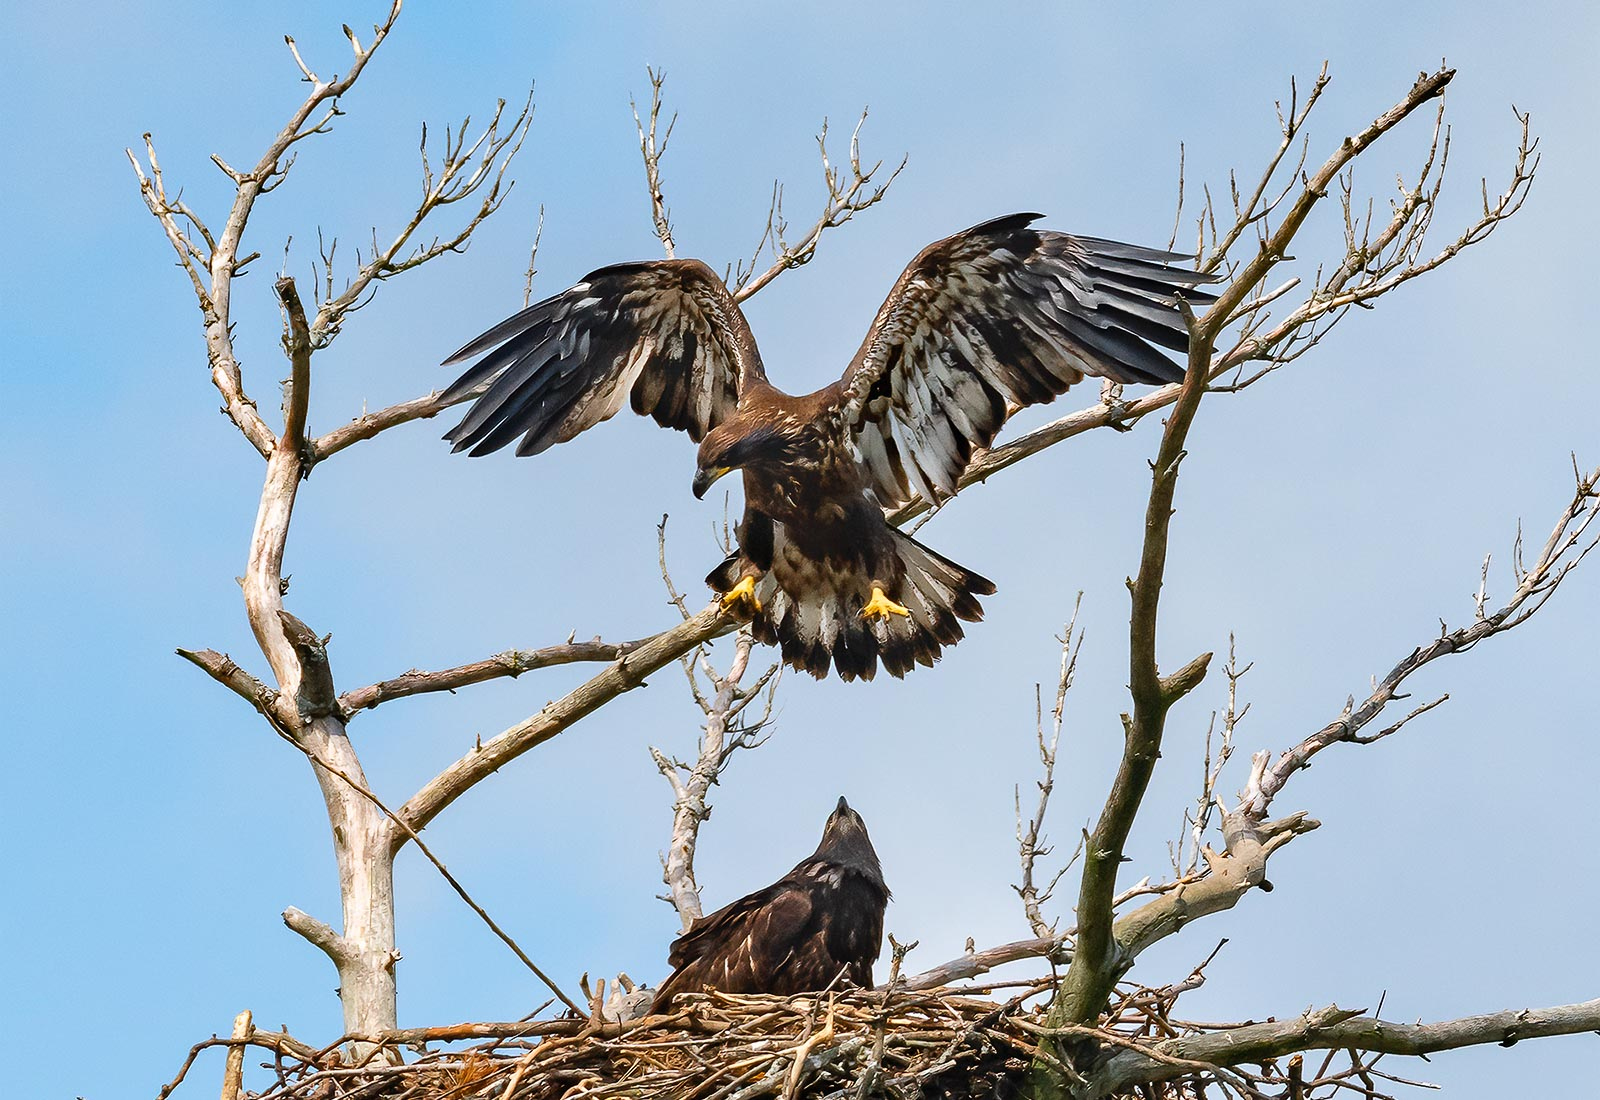 Eaglet catches air while preparing to fly